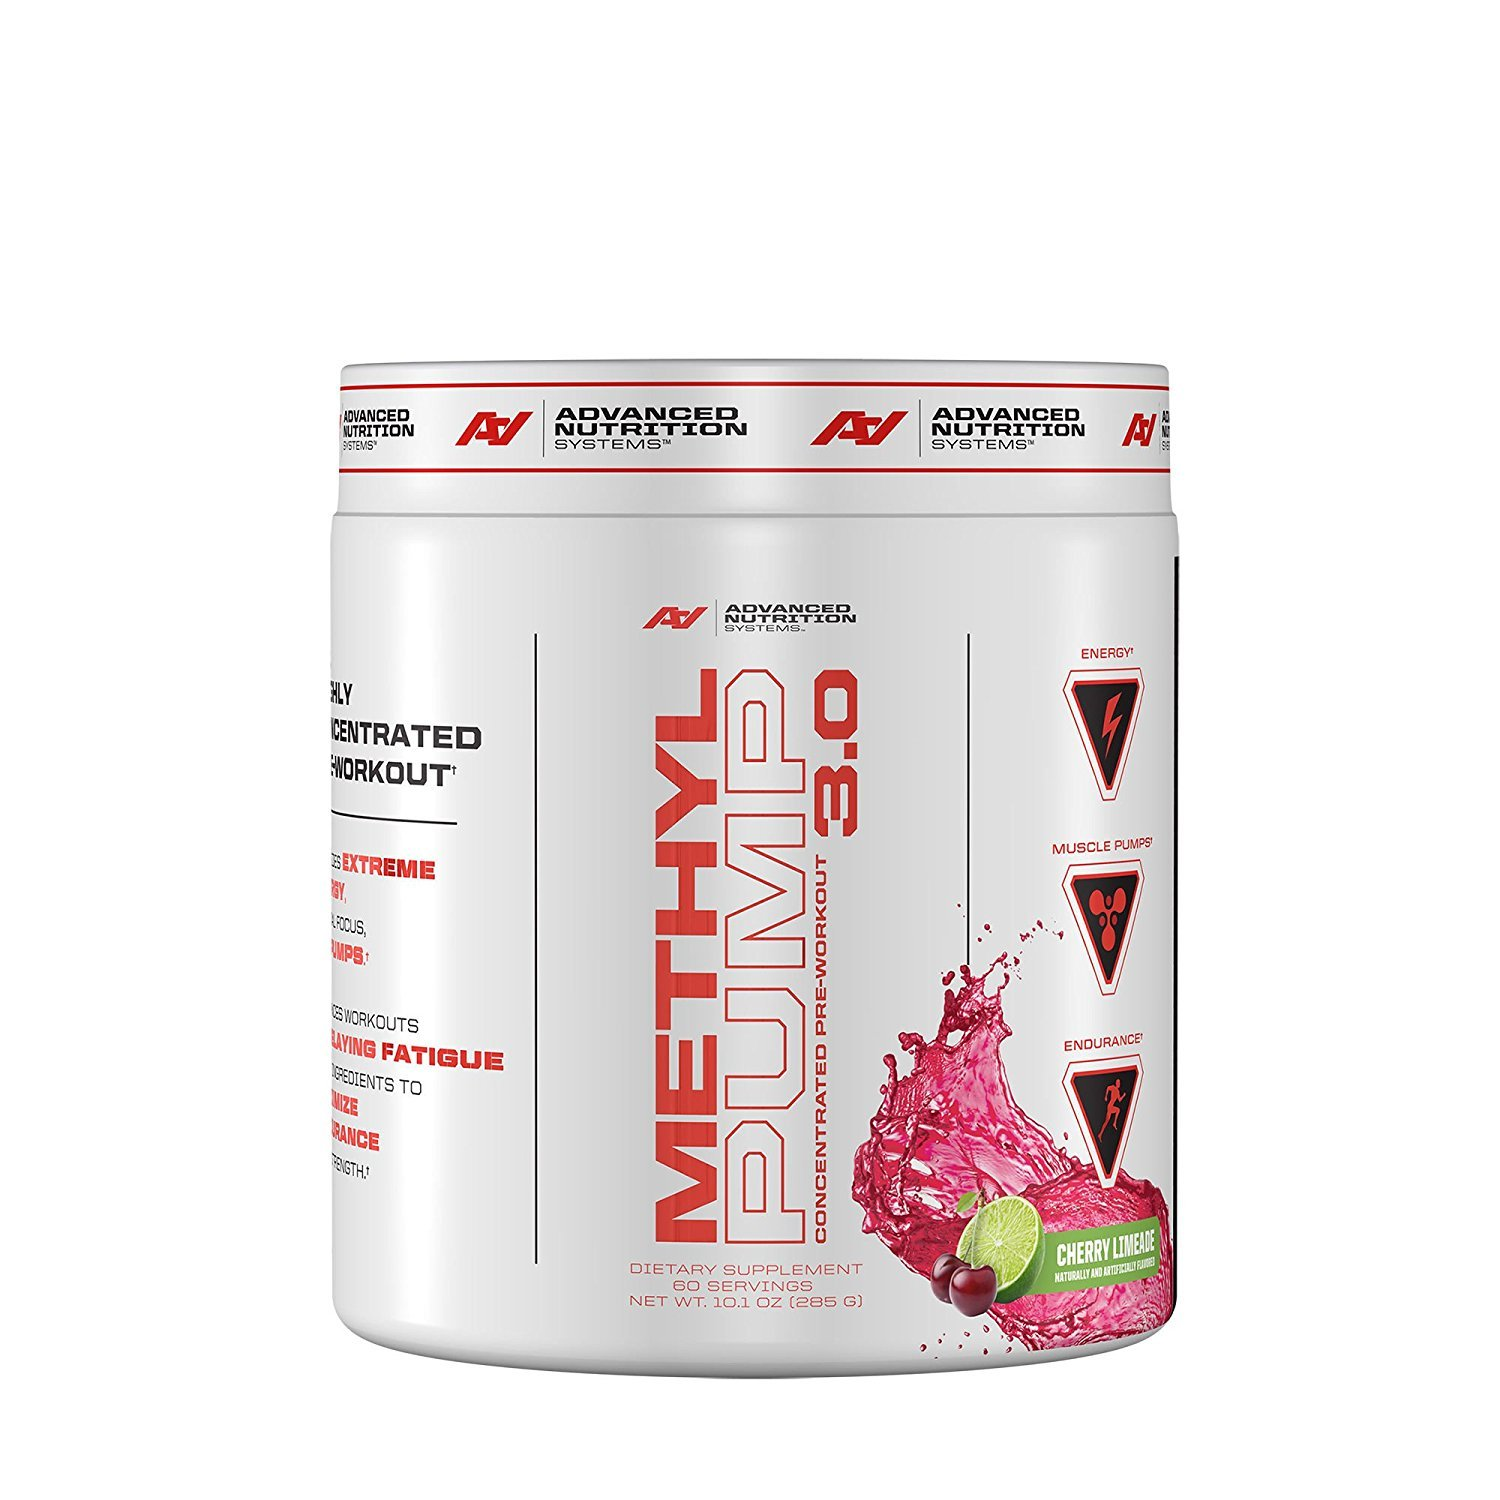 Advanced Nutrition Systems Methyl Pump Concentrated Pre-Workout 3.0 - Cherry Limeade